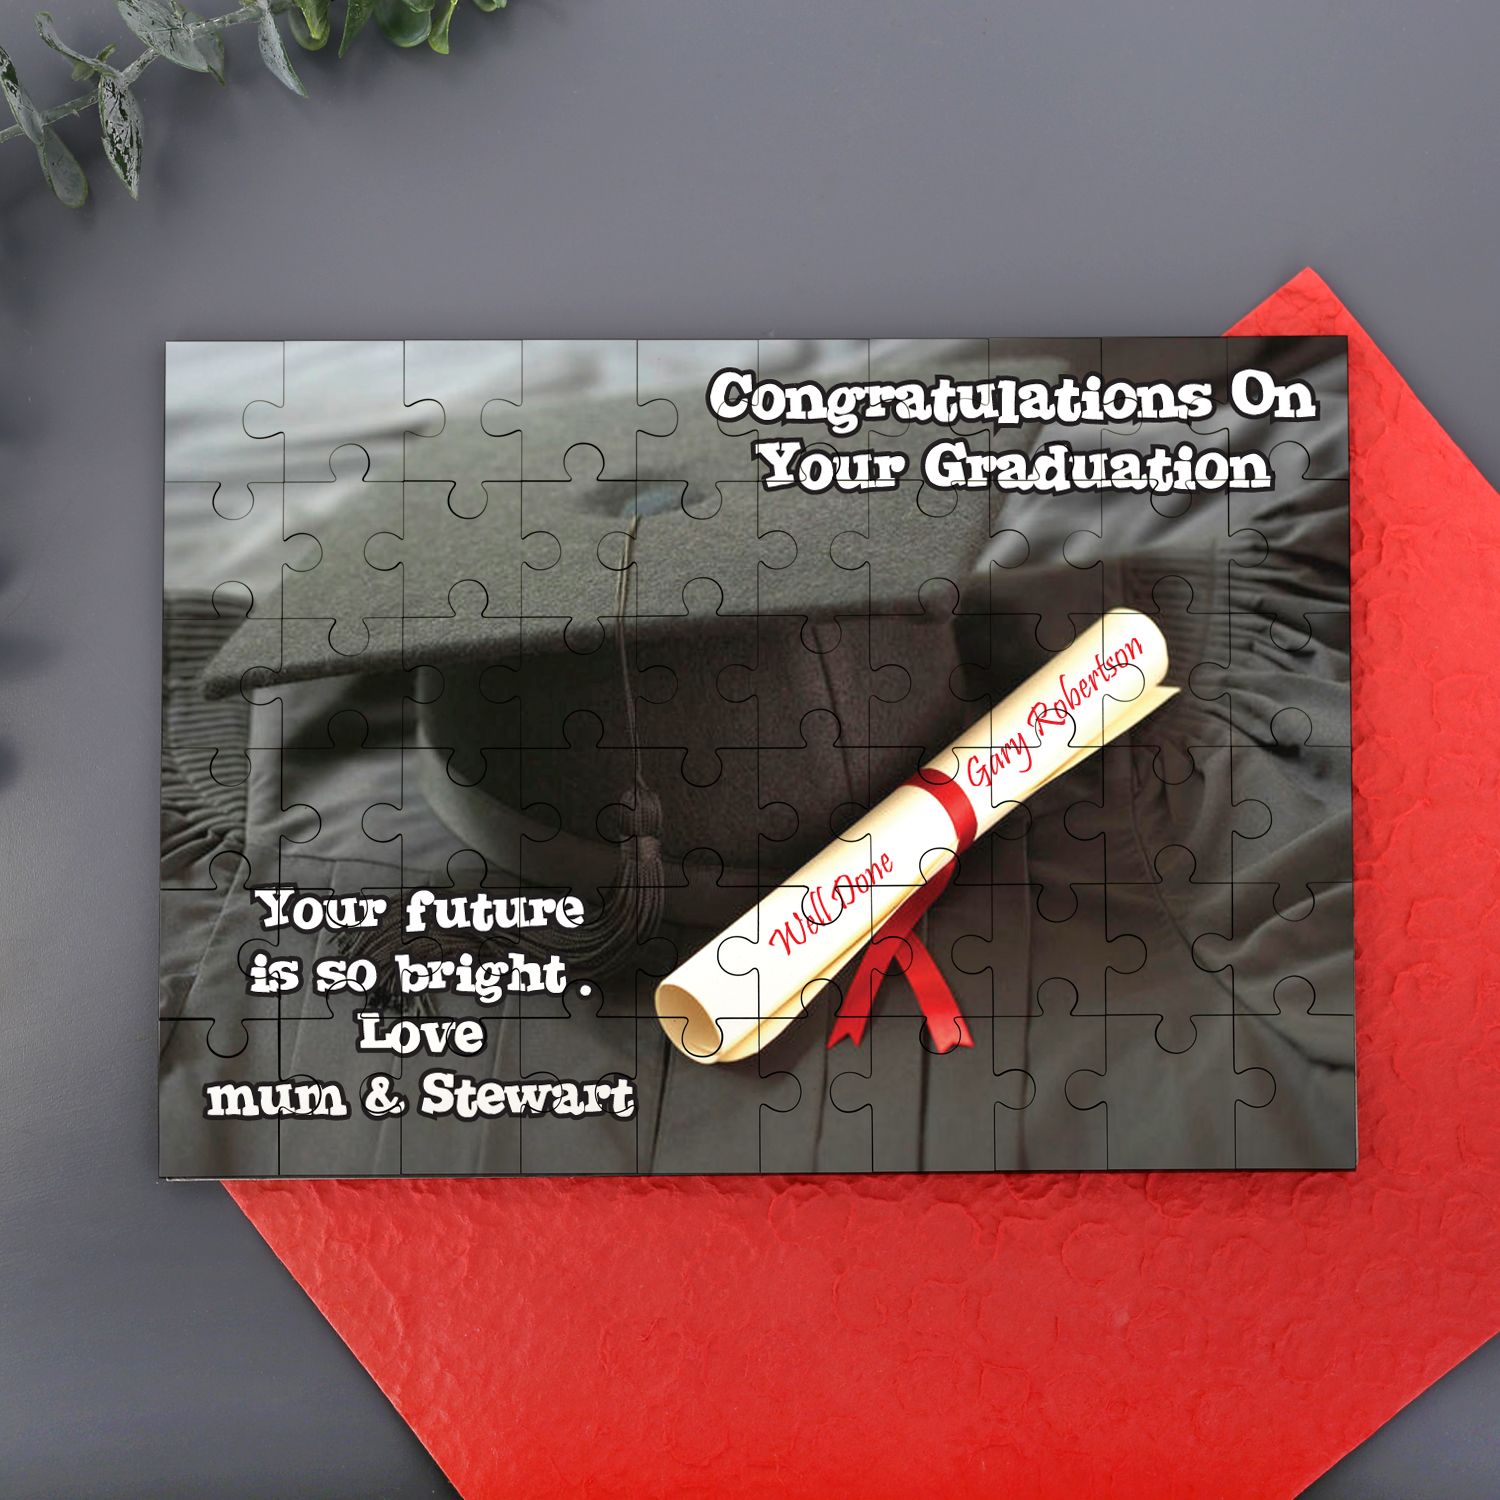 Graduation Message On a Jigsaw - Graduation Gifts